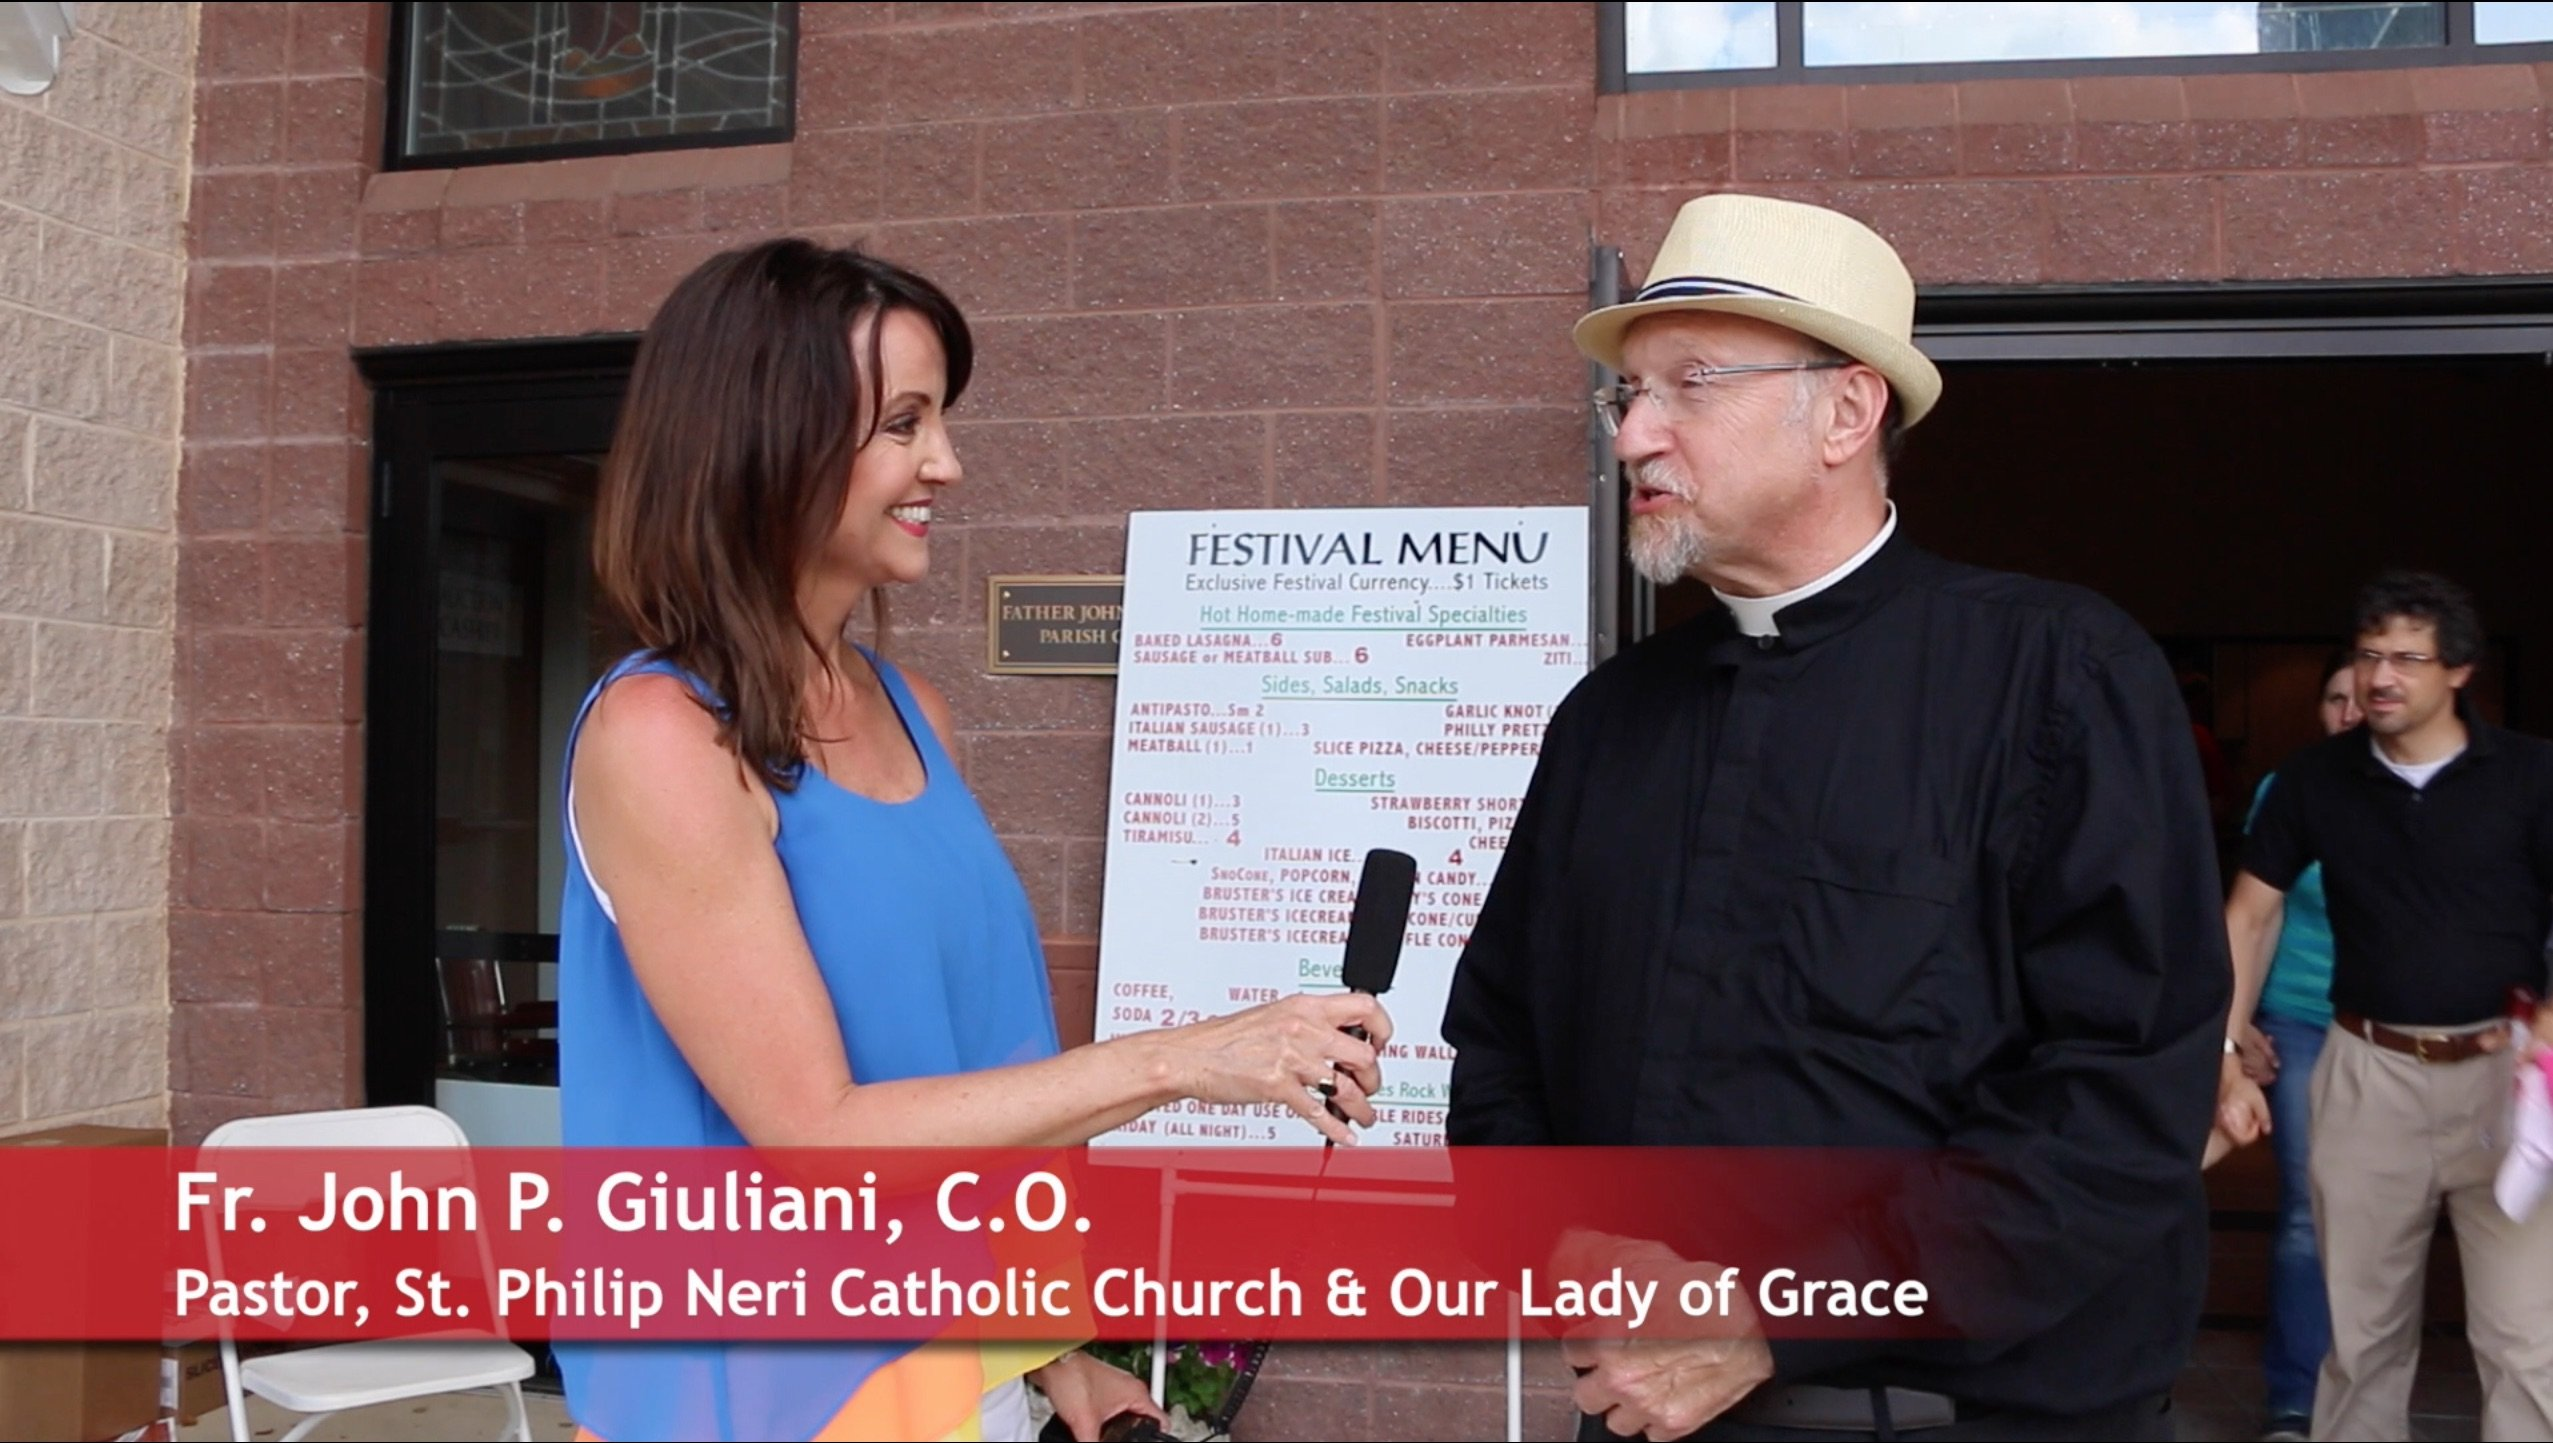 St Phillip Neri Italian Festival is May 17th, 18th, and 19th, 2018